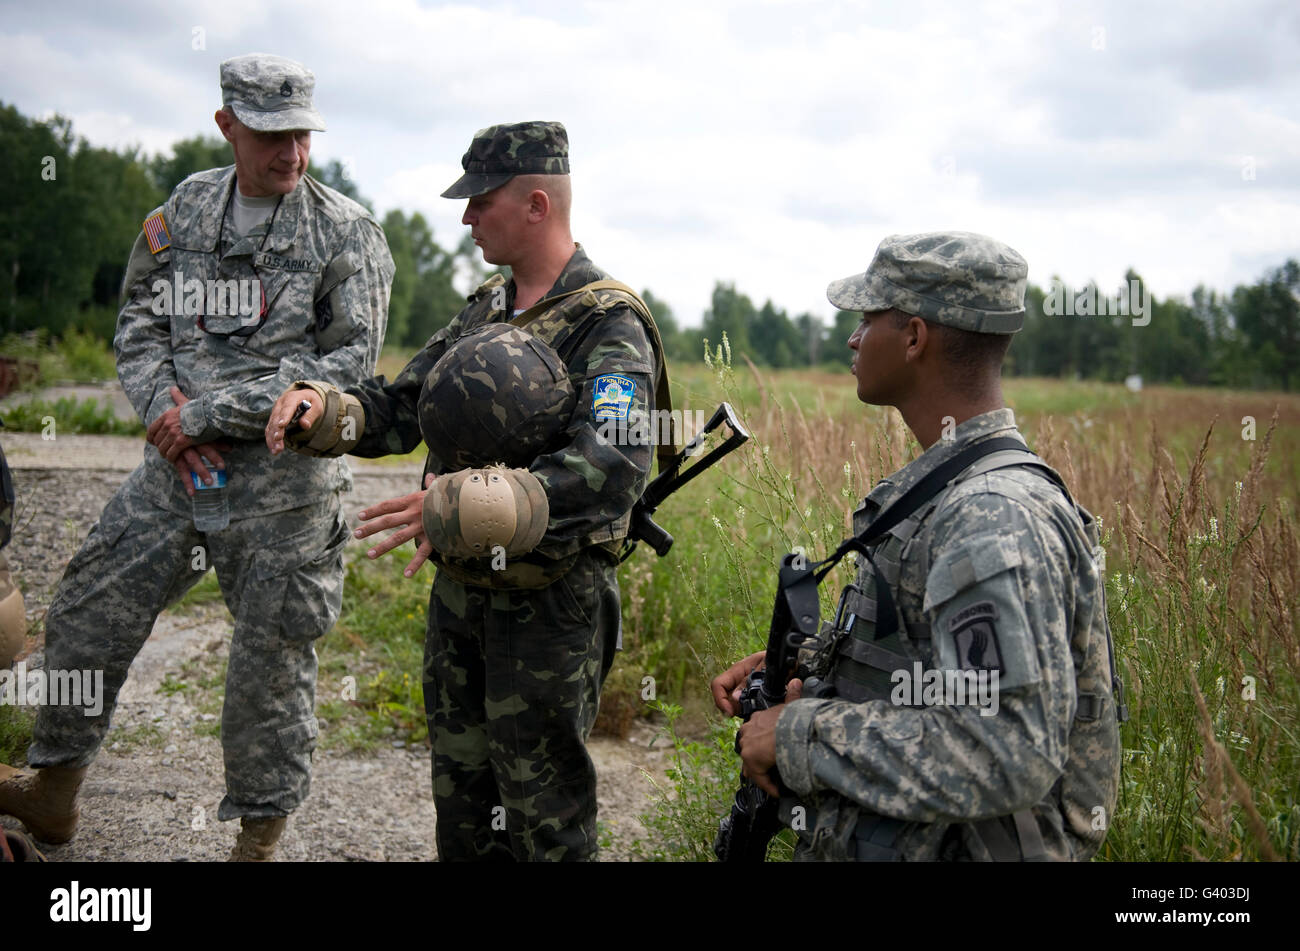 U.S. Army paratroopers train with Ukrainian Army paratroopers. - Stock Image